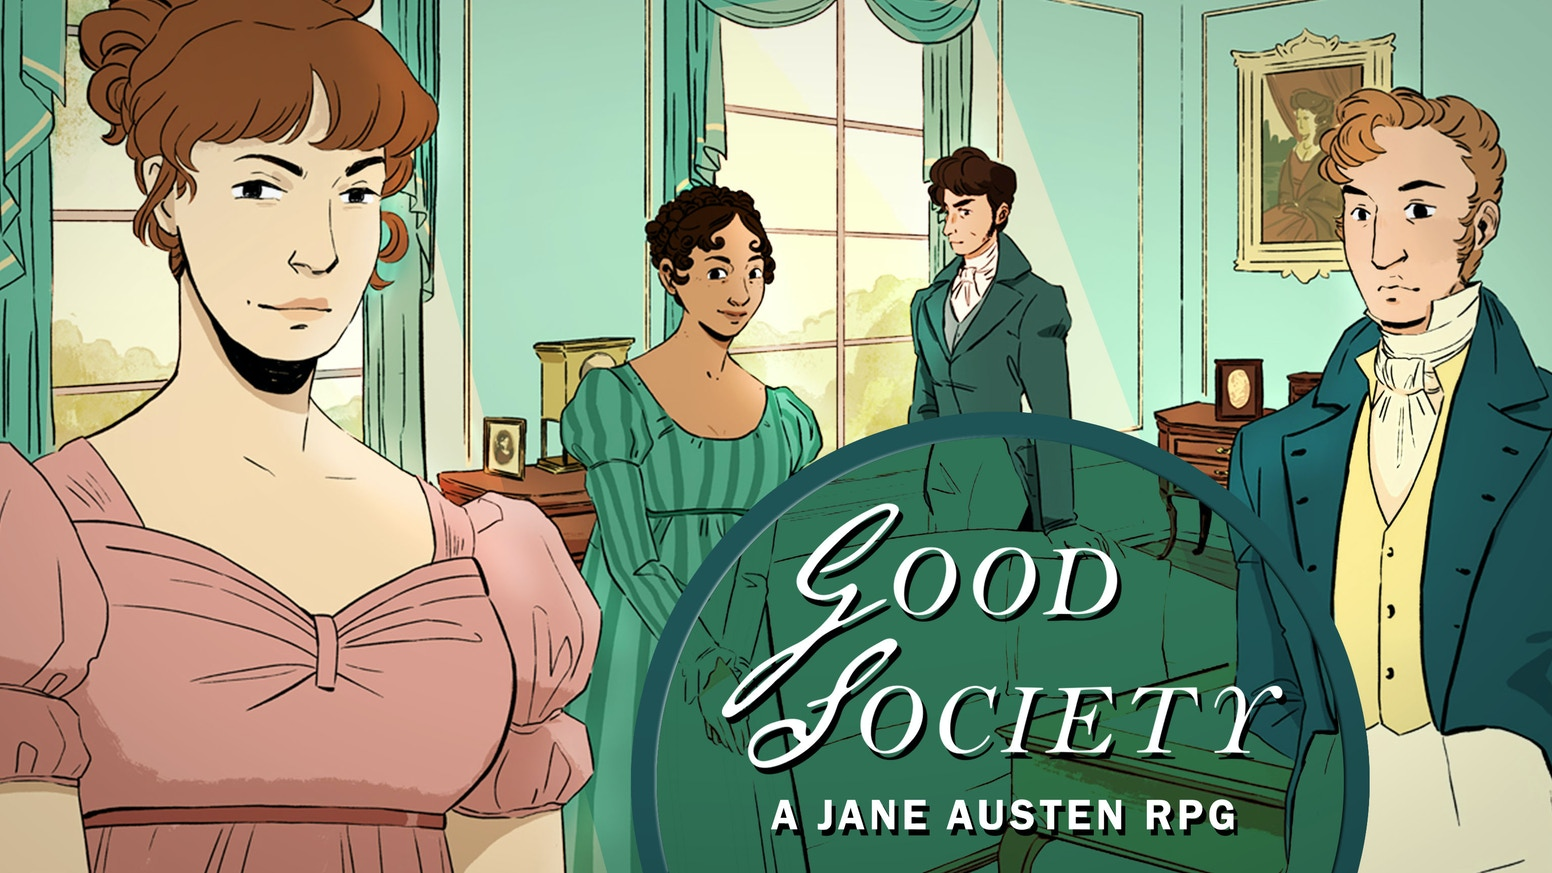 Navigate the pitfalls of romance, reputation, manners and marriage in this tabletop rpg that captures the heart of Austen's work.